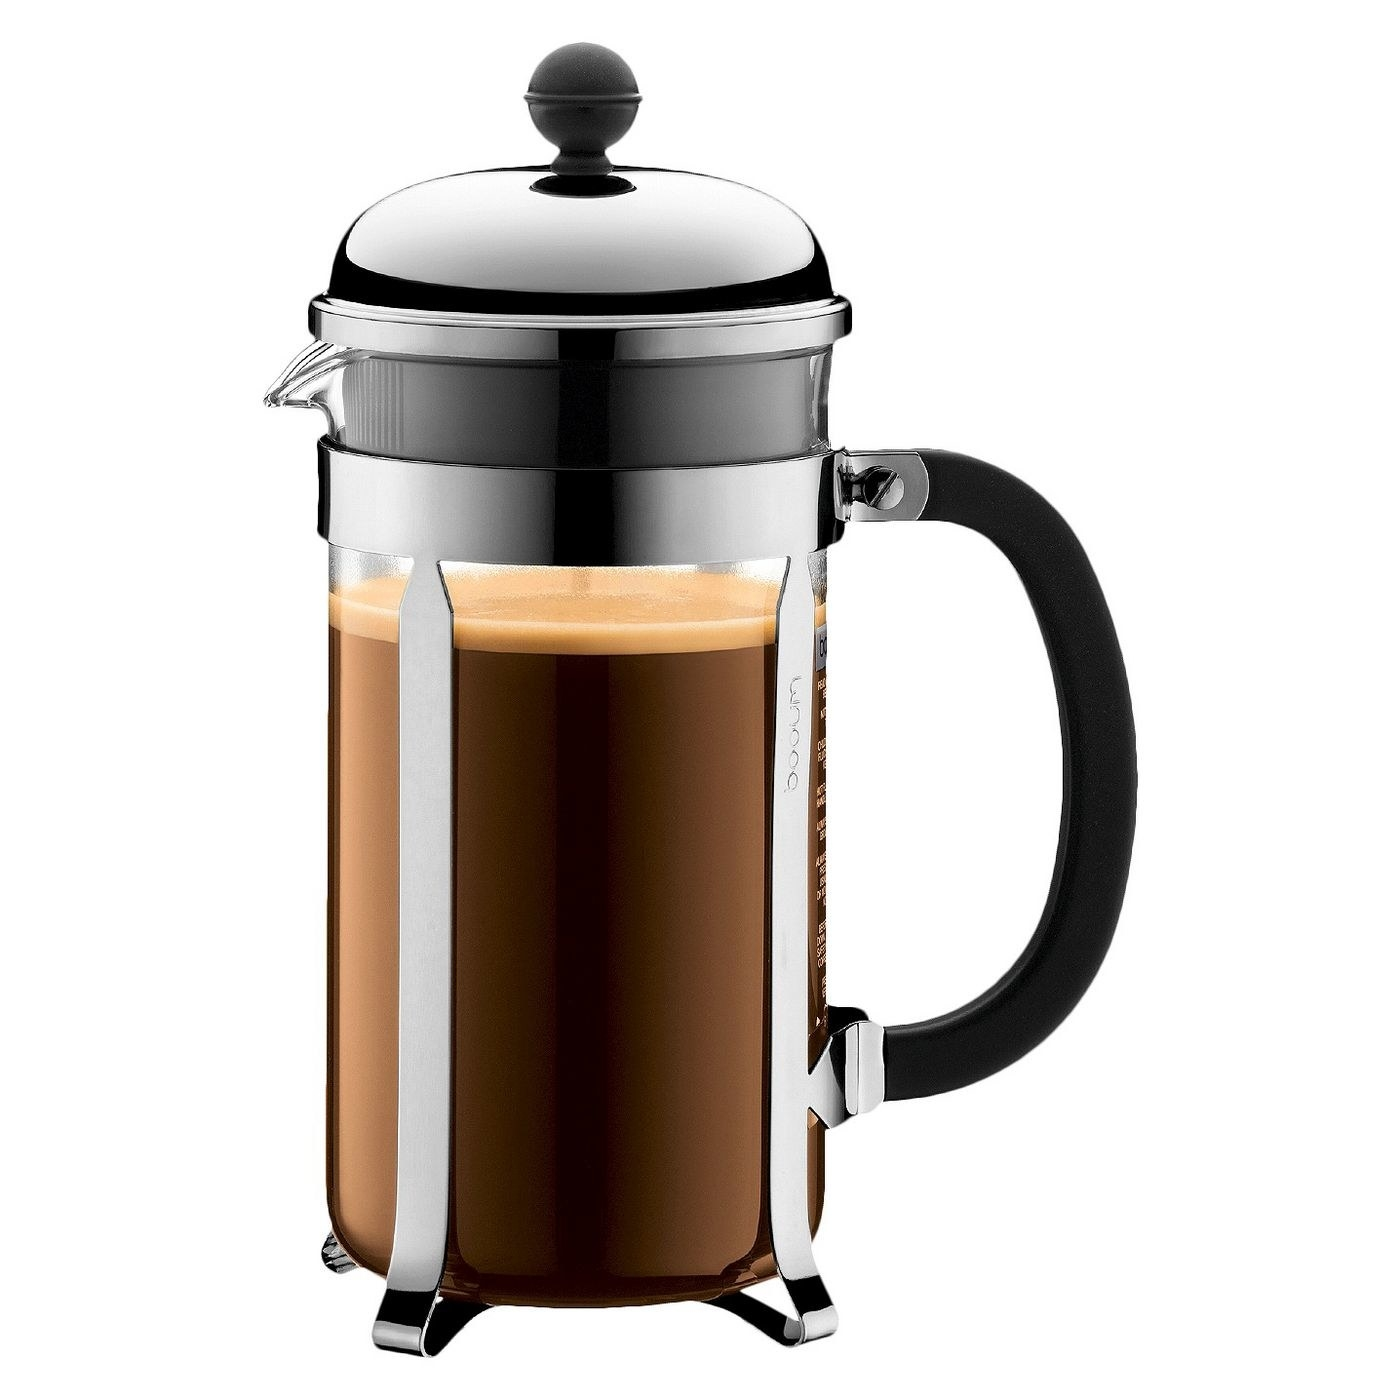 the Bodum Chambord 8 Cup french press